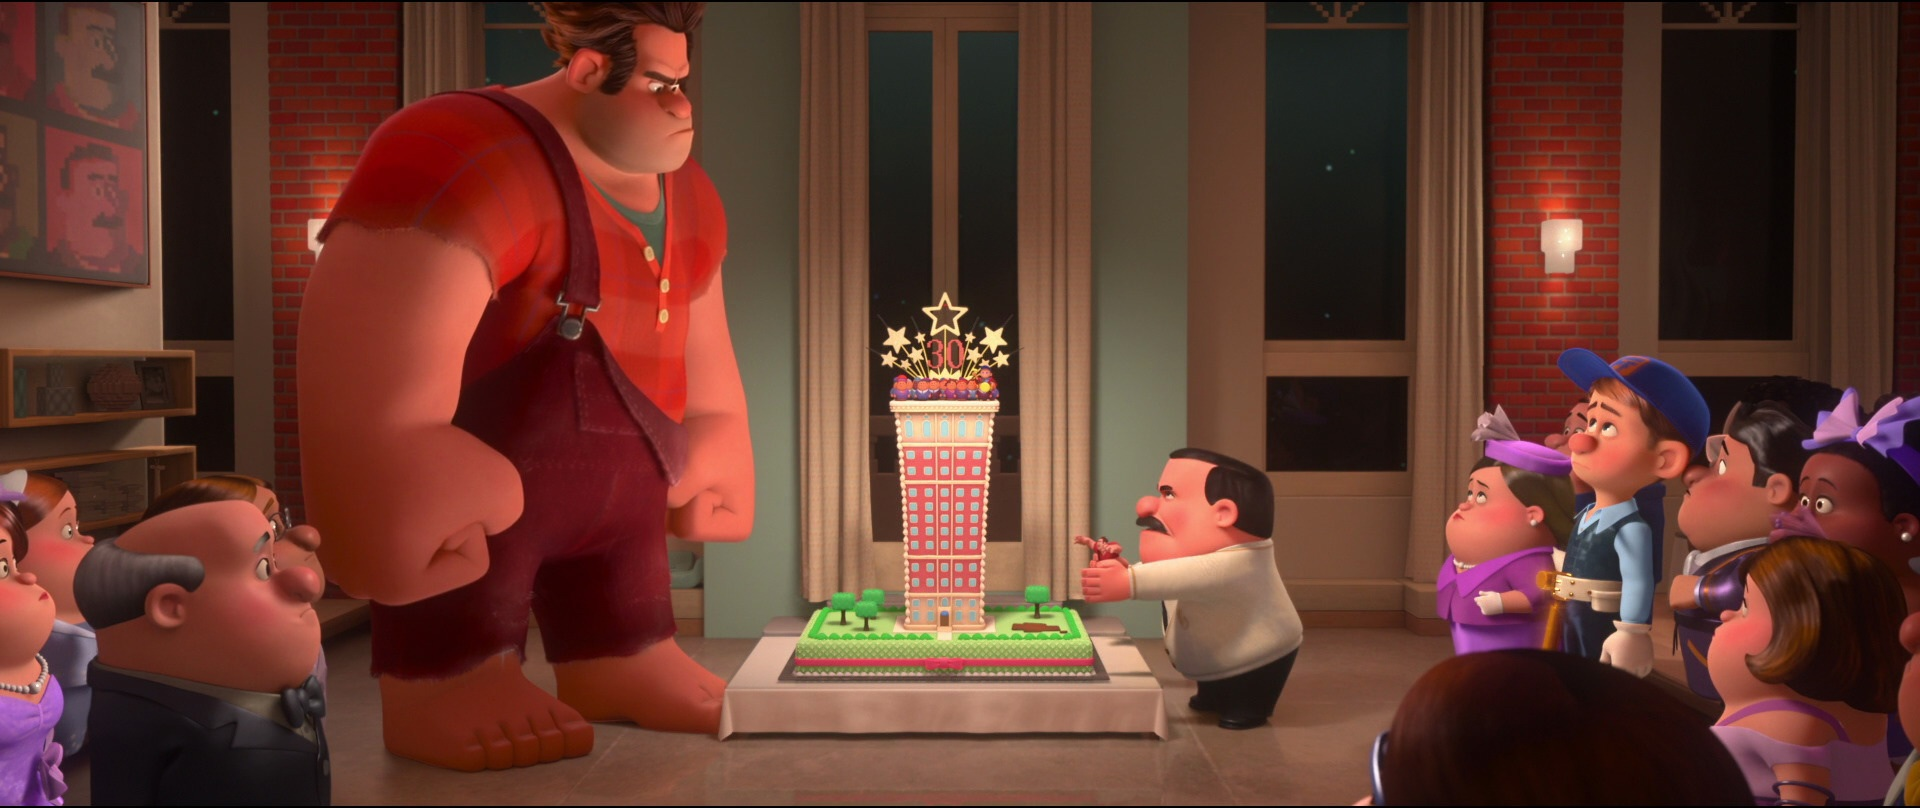 Best Lines From Wreck It Ralph 2: Wreck-It Ralph: The Best Computer Animated Disney Feature